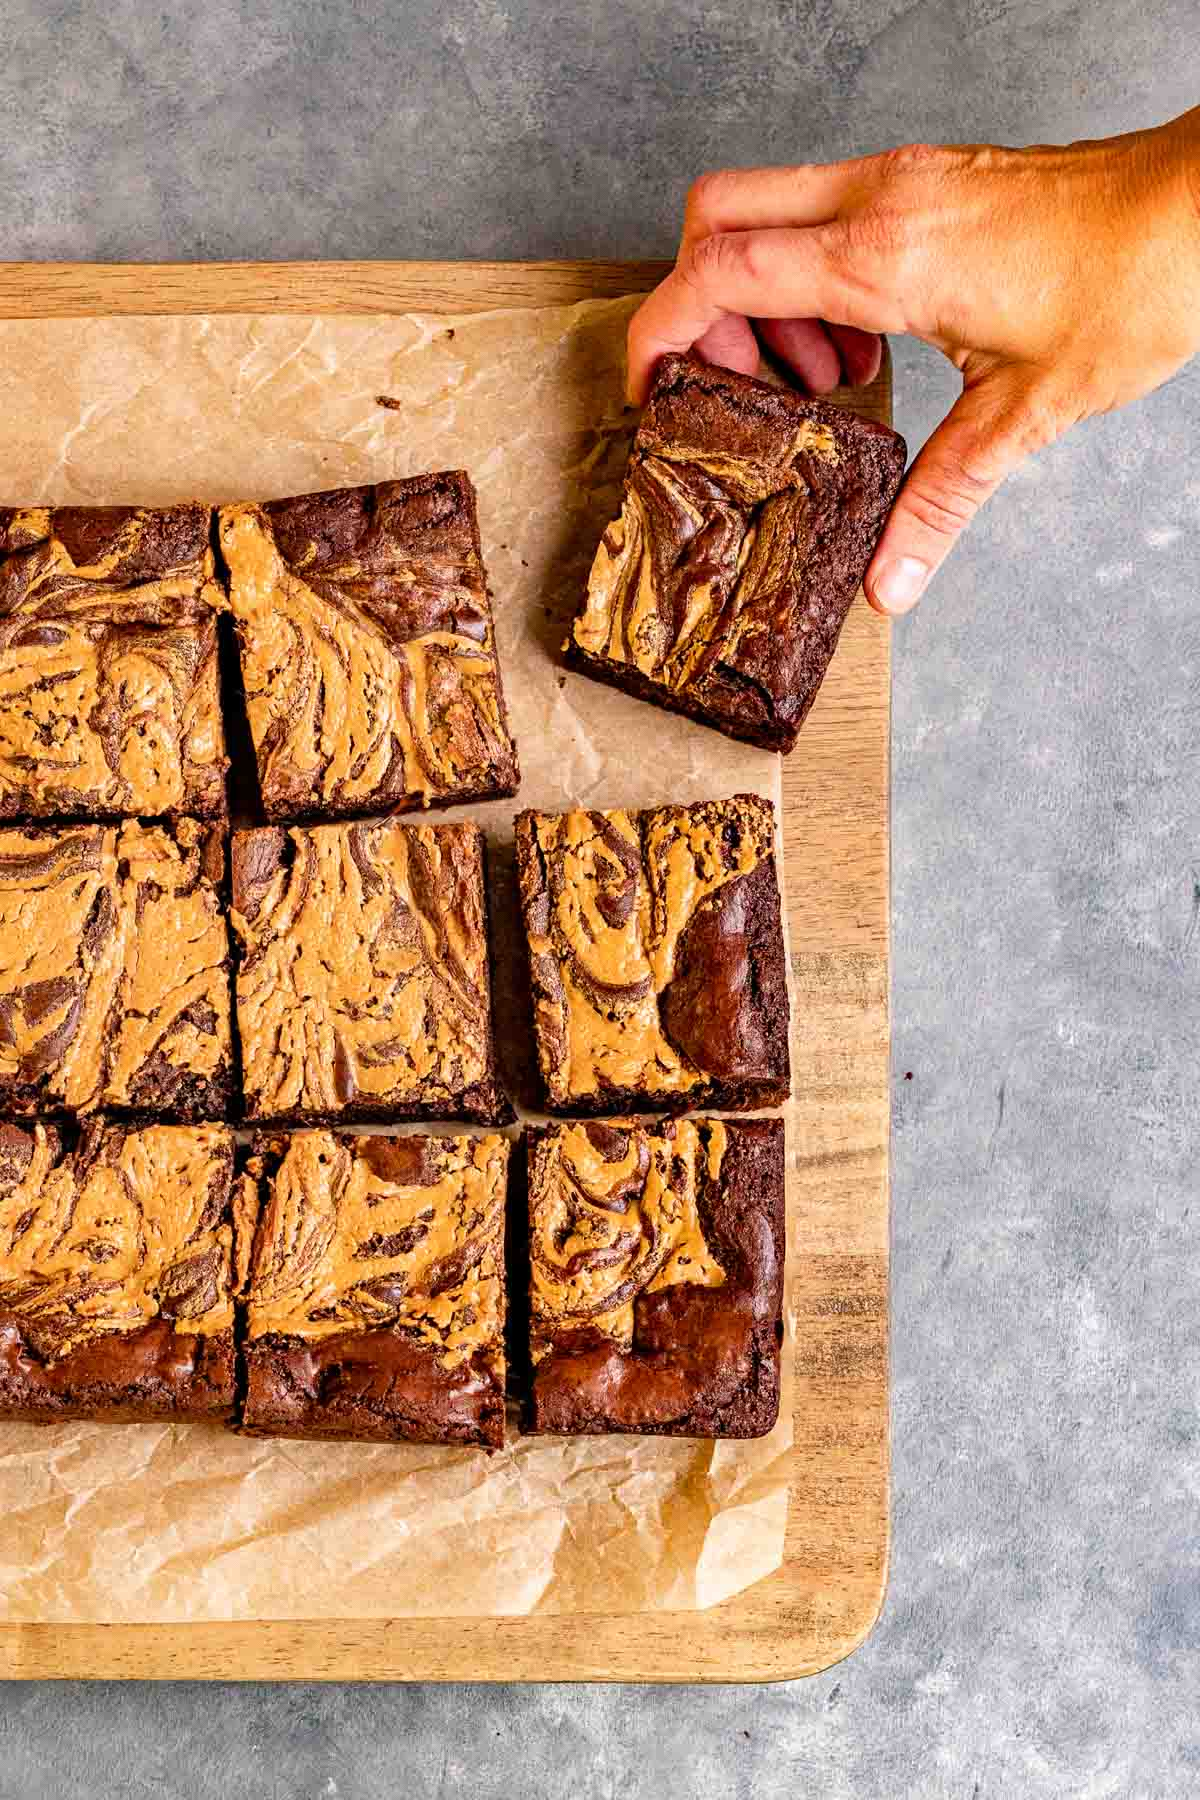 Peanut Butter Swirl Brownies sliced on parchment with hand